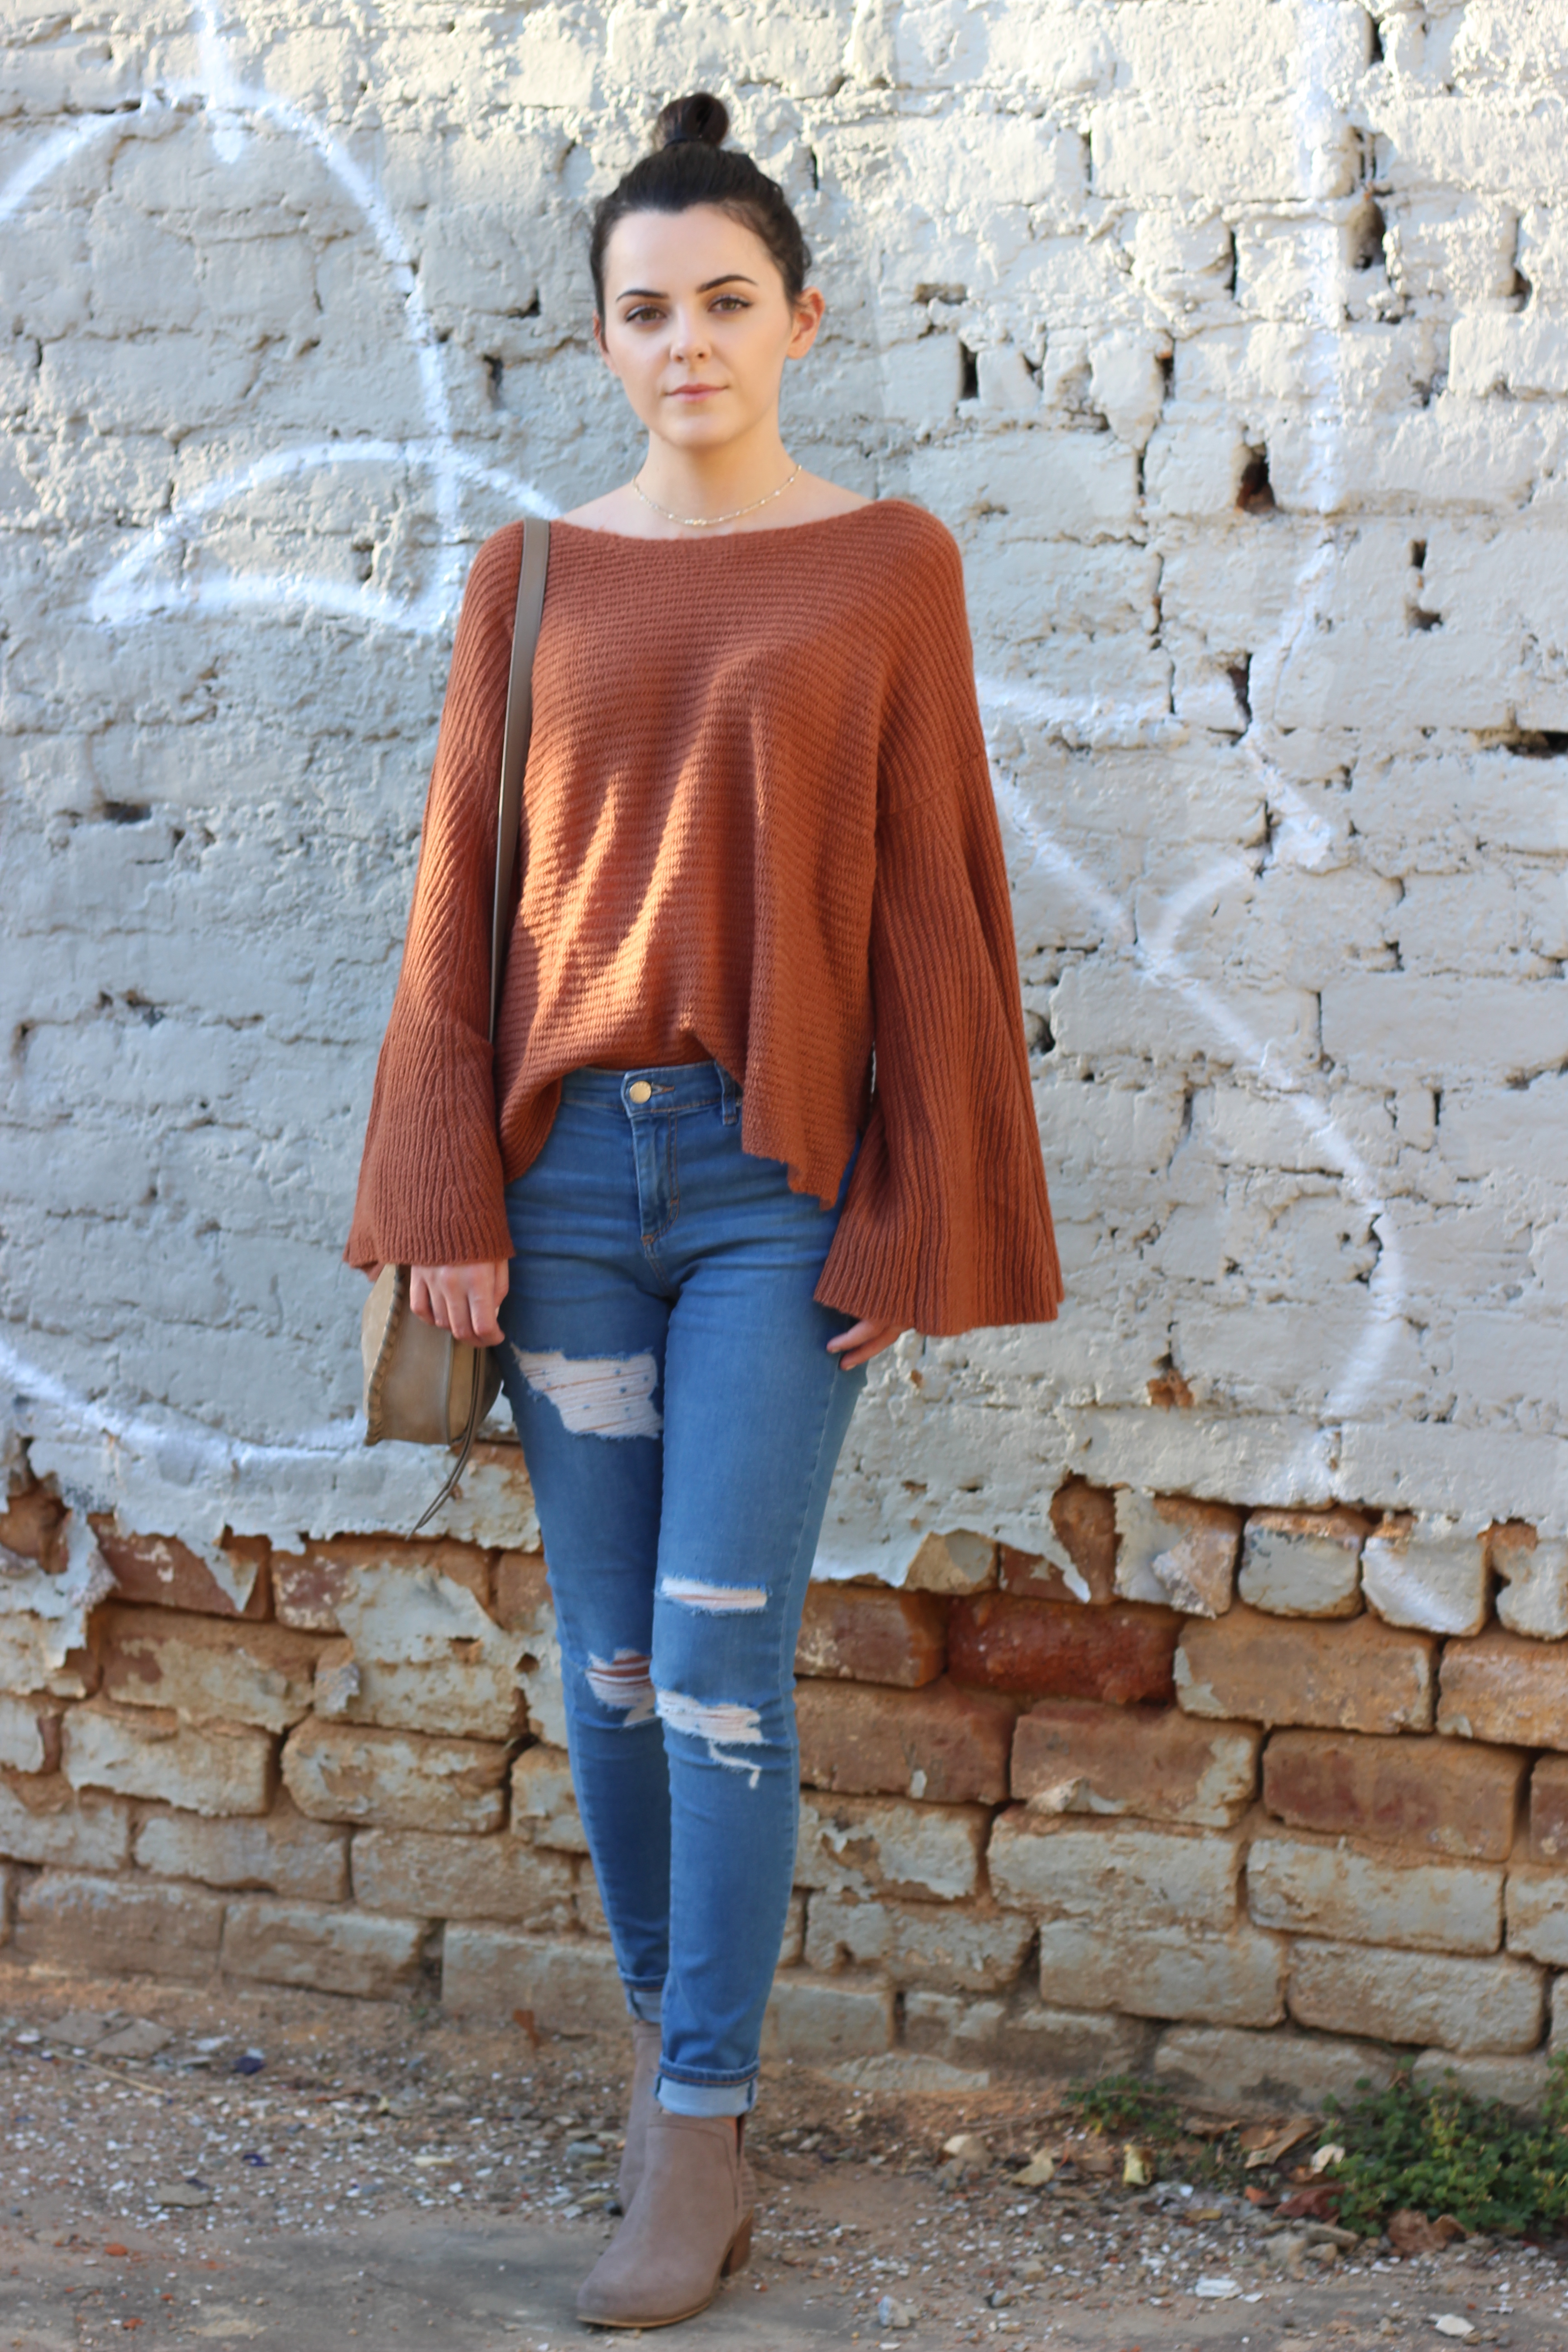 Bell Sleeves + Distressed Jeans : What I Wore In Asheville